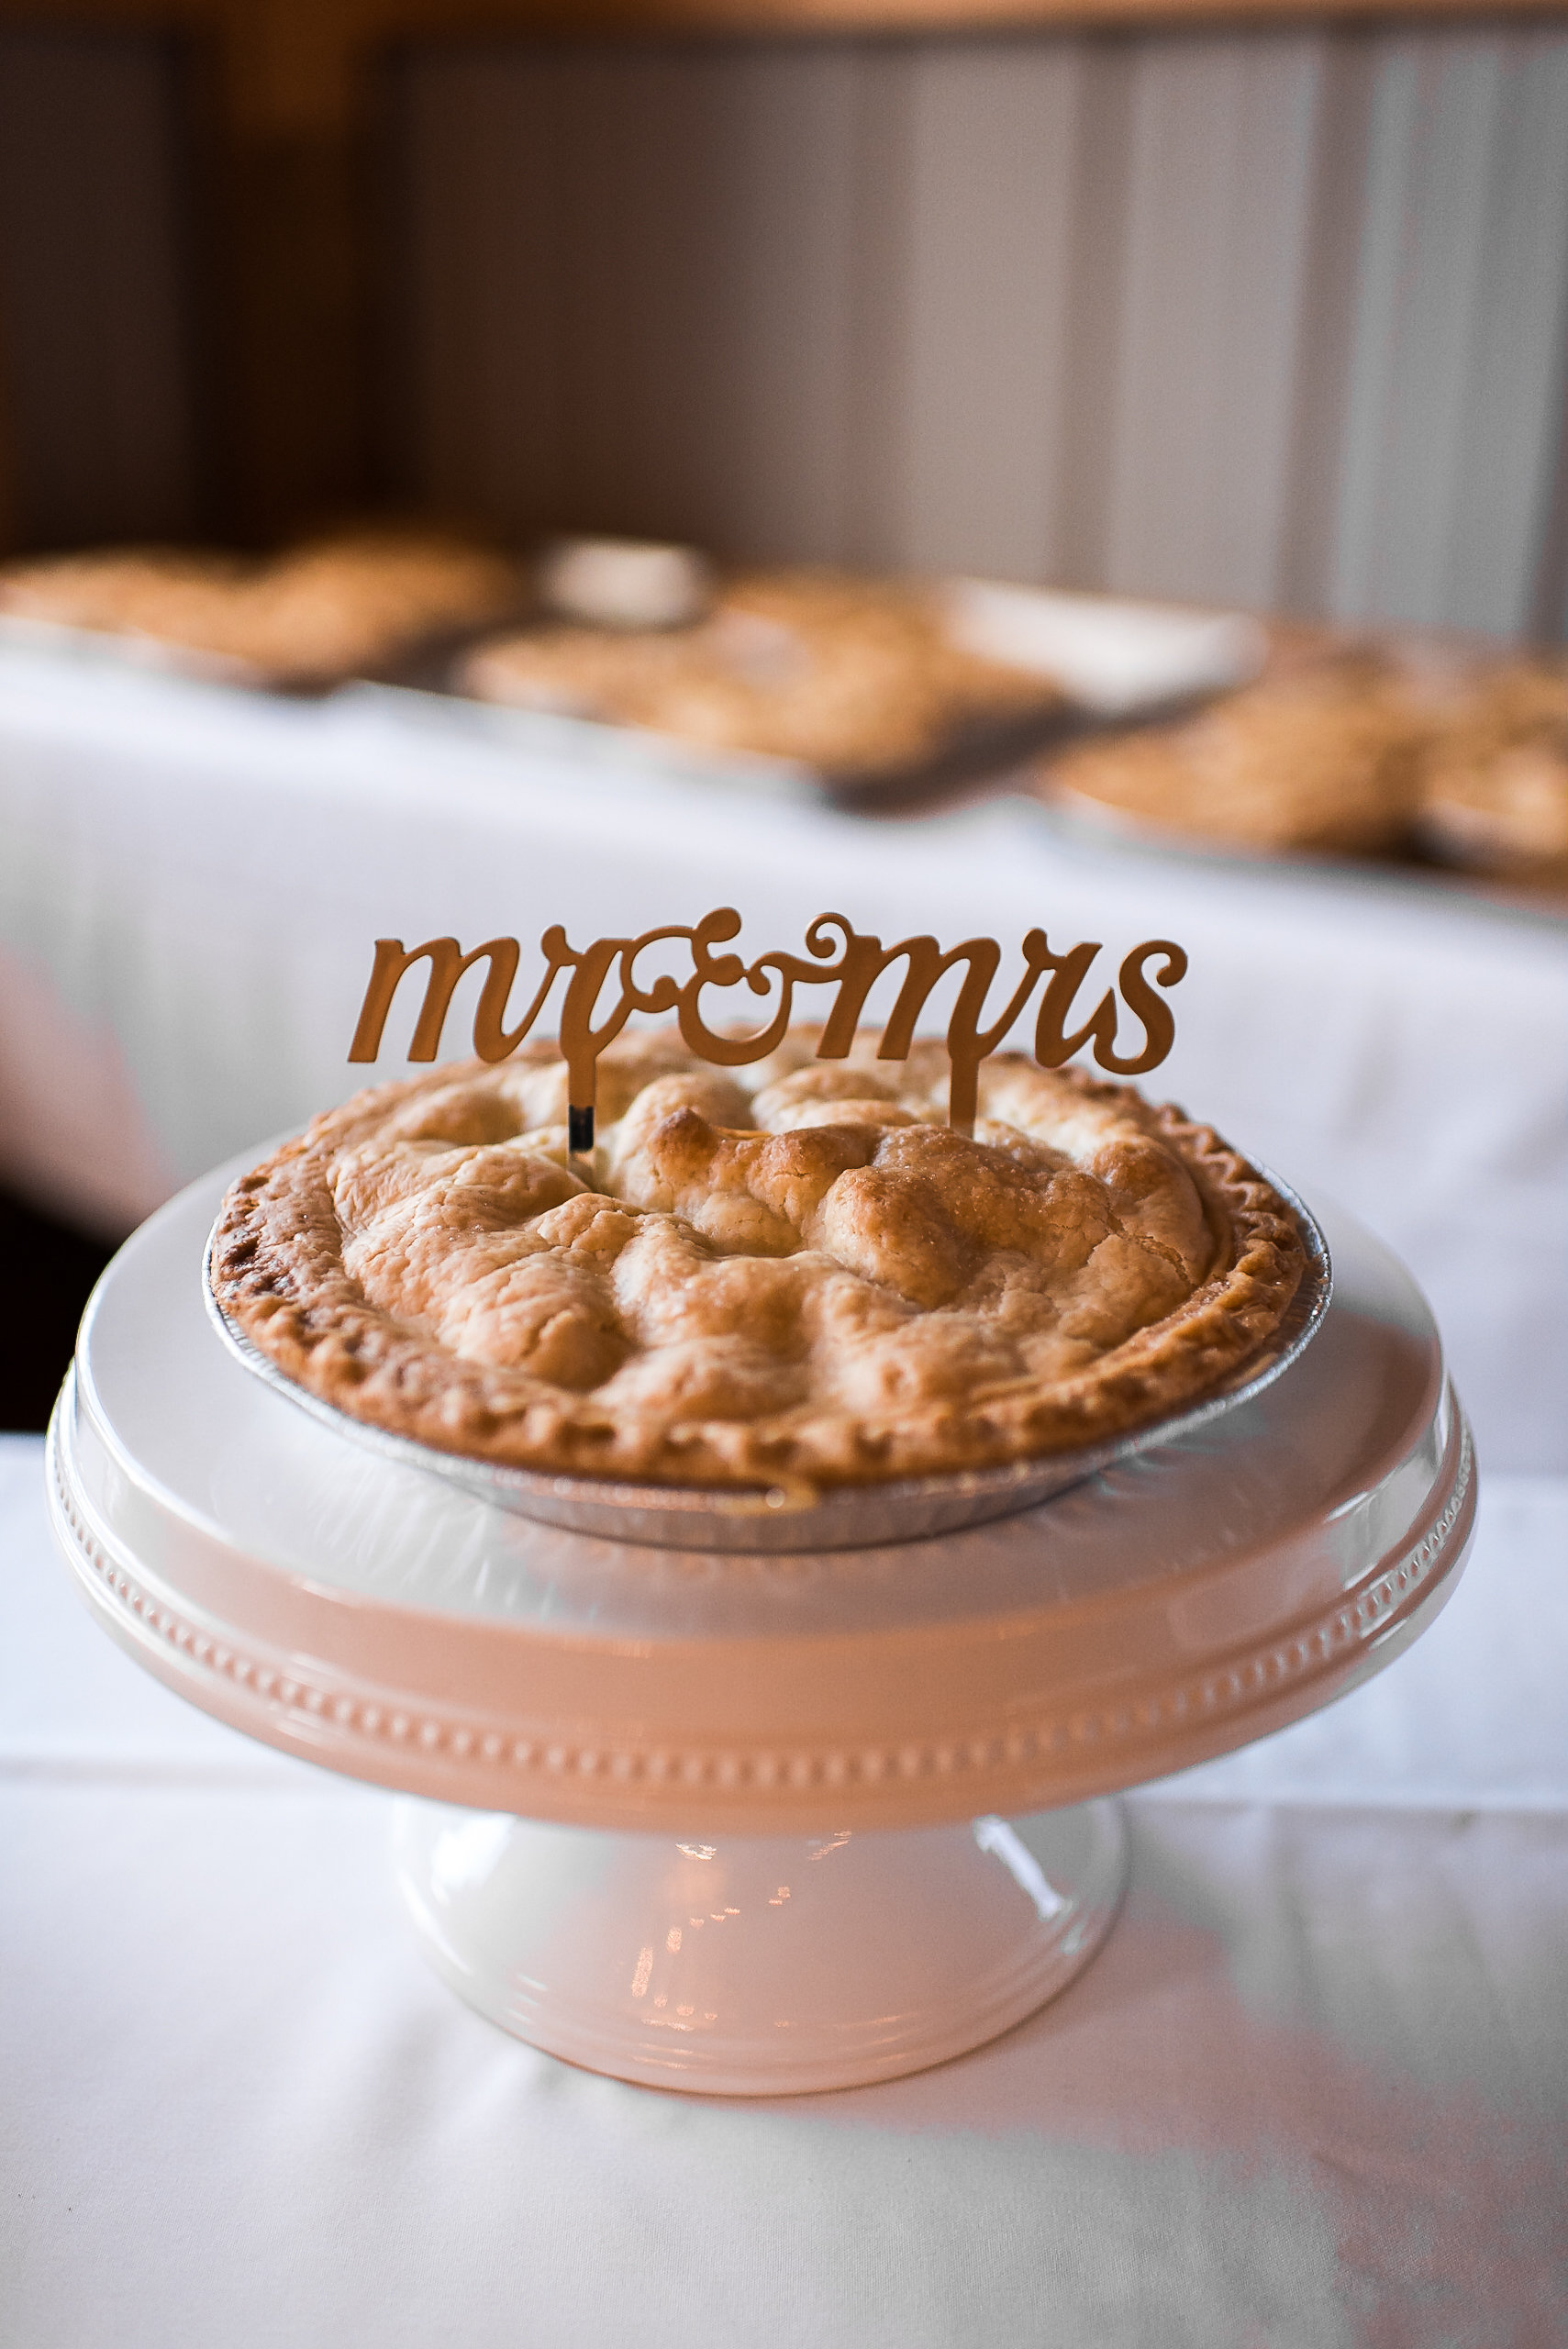 Apple pies instead of wedding cake non-traditional wedding cake substitute - apple orchard wedding pie cake